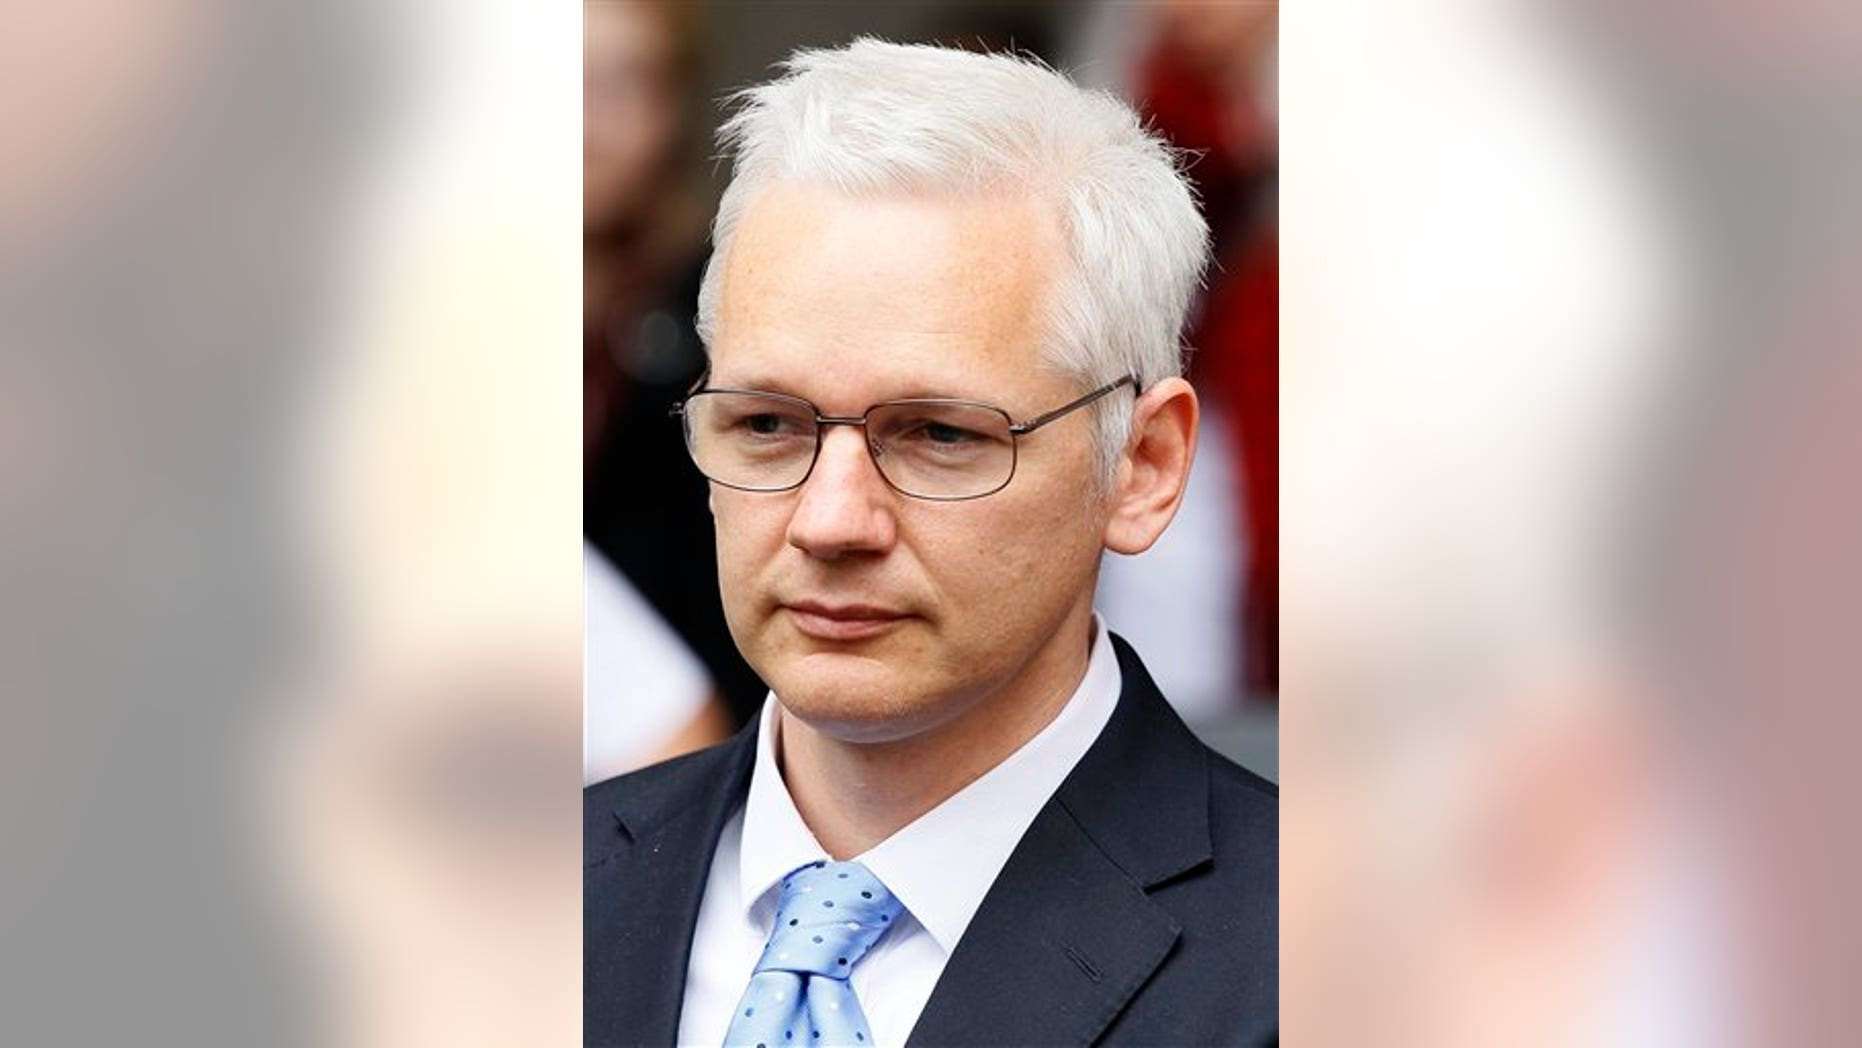 Tuesday, July 12: Wikileaks founder, Julian Assange leaves court after his extradition appeal hearing.